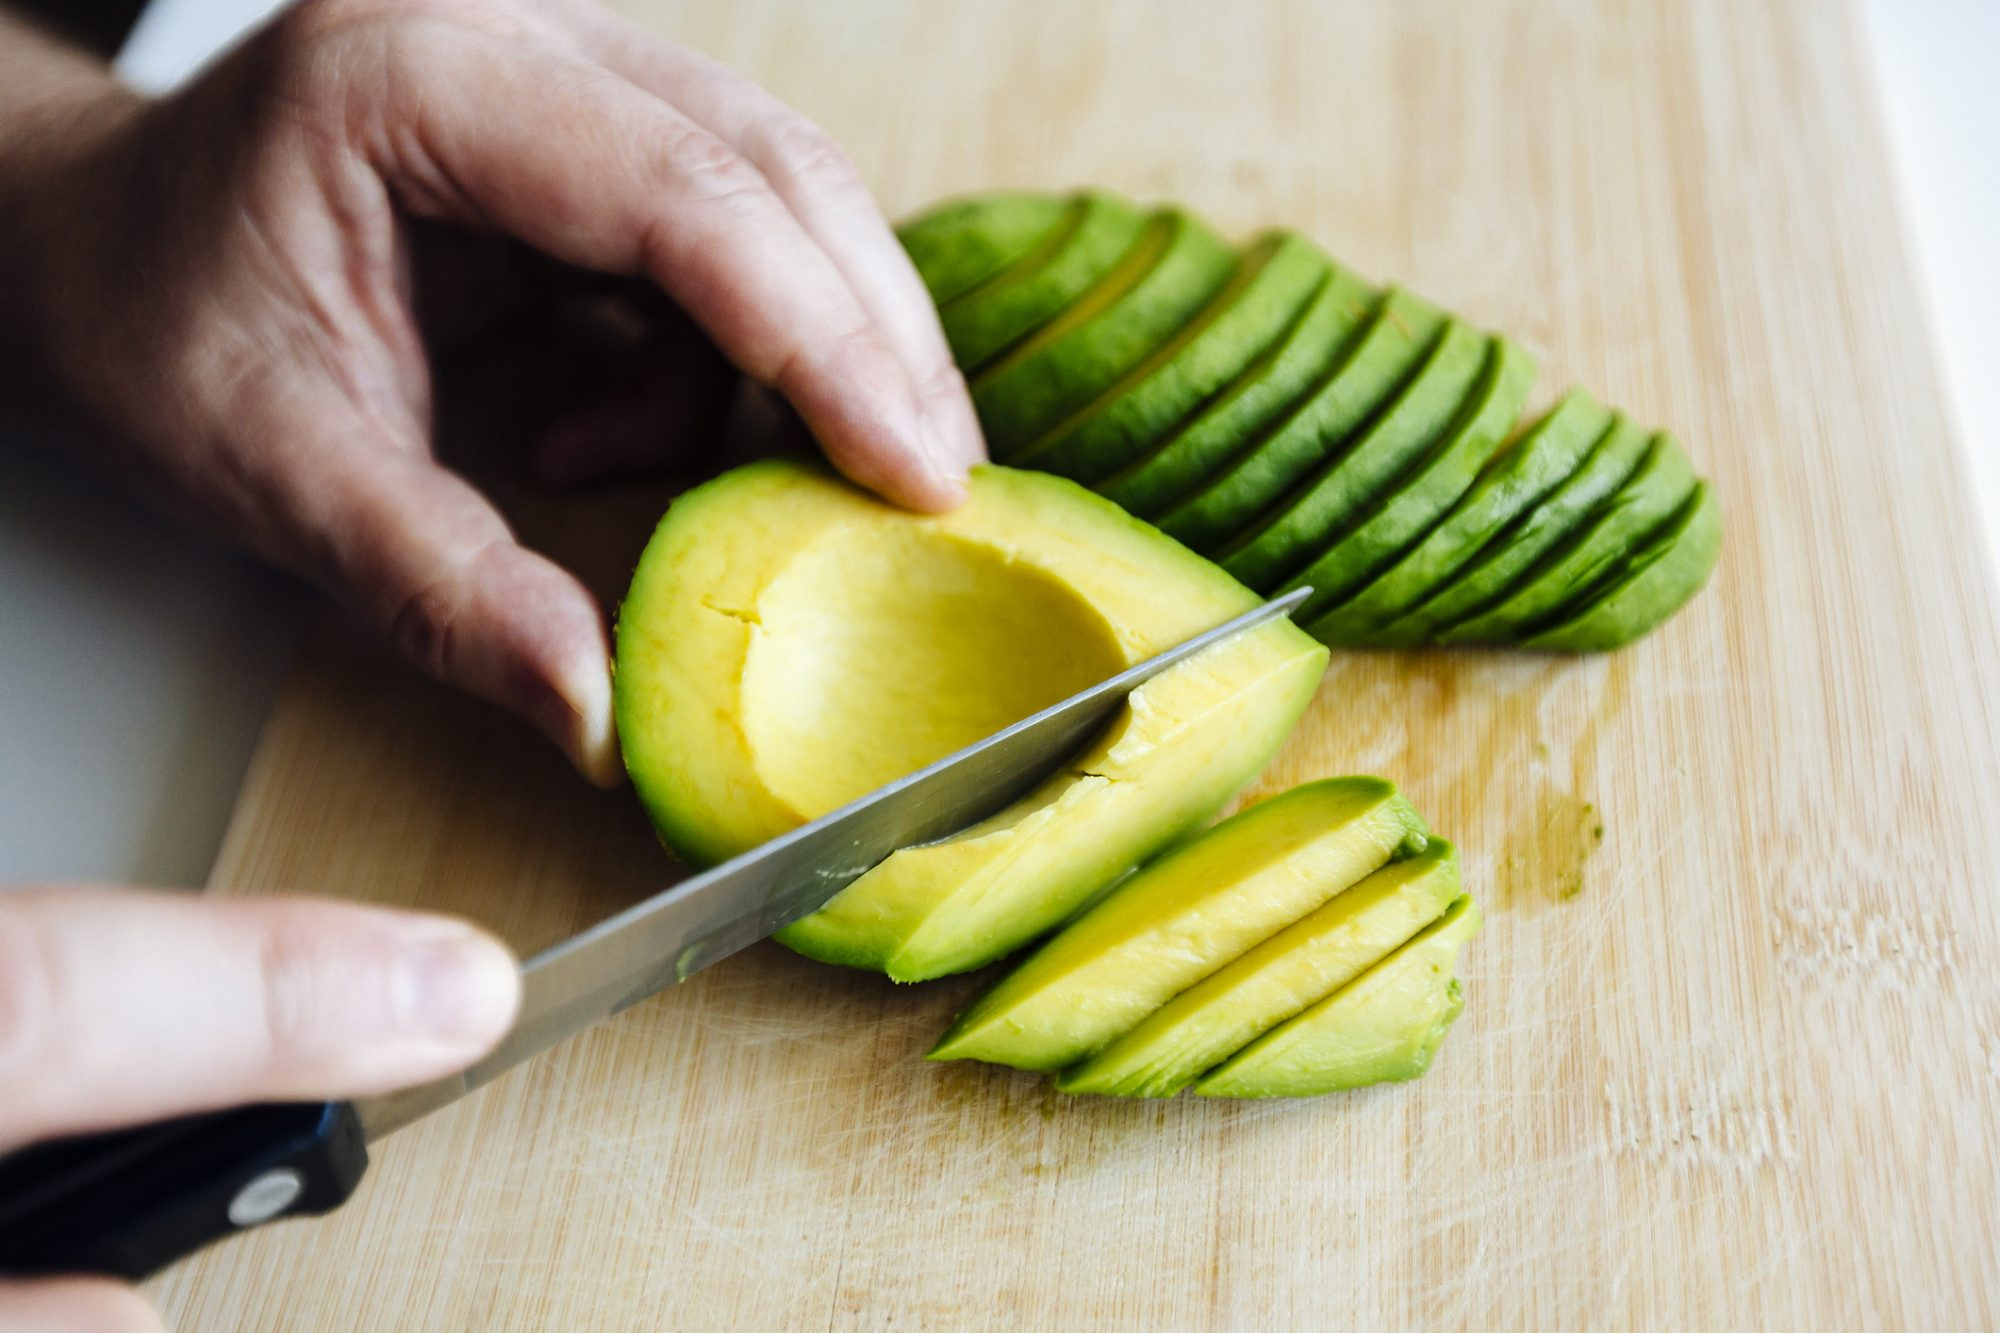 Avocado Hand Costs New Zealand Hundreds of Thousands of Dollars Each Year